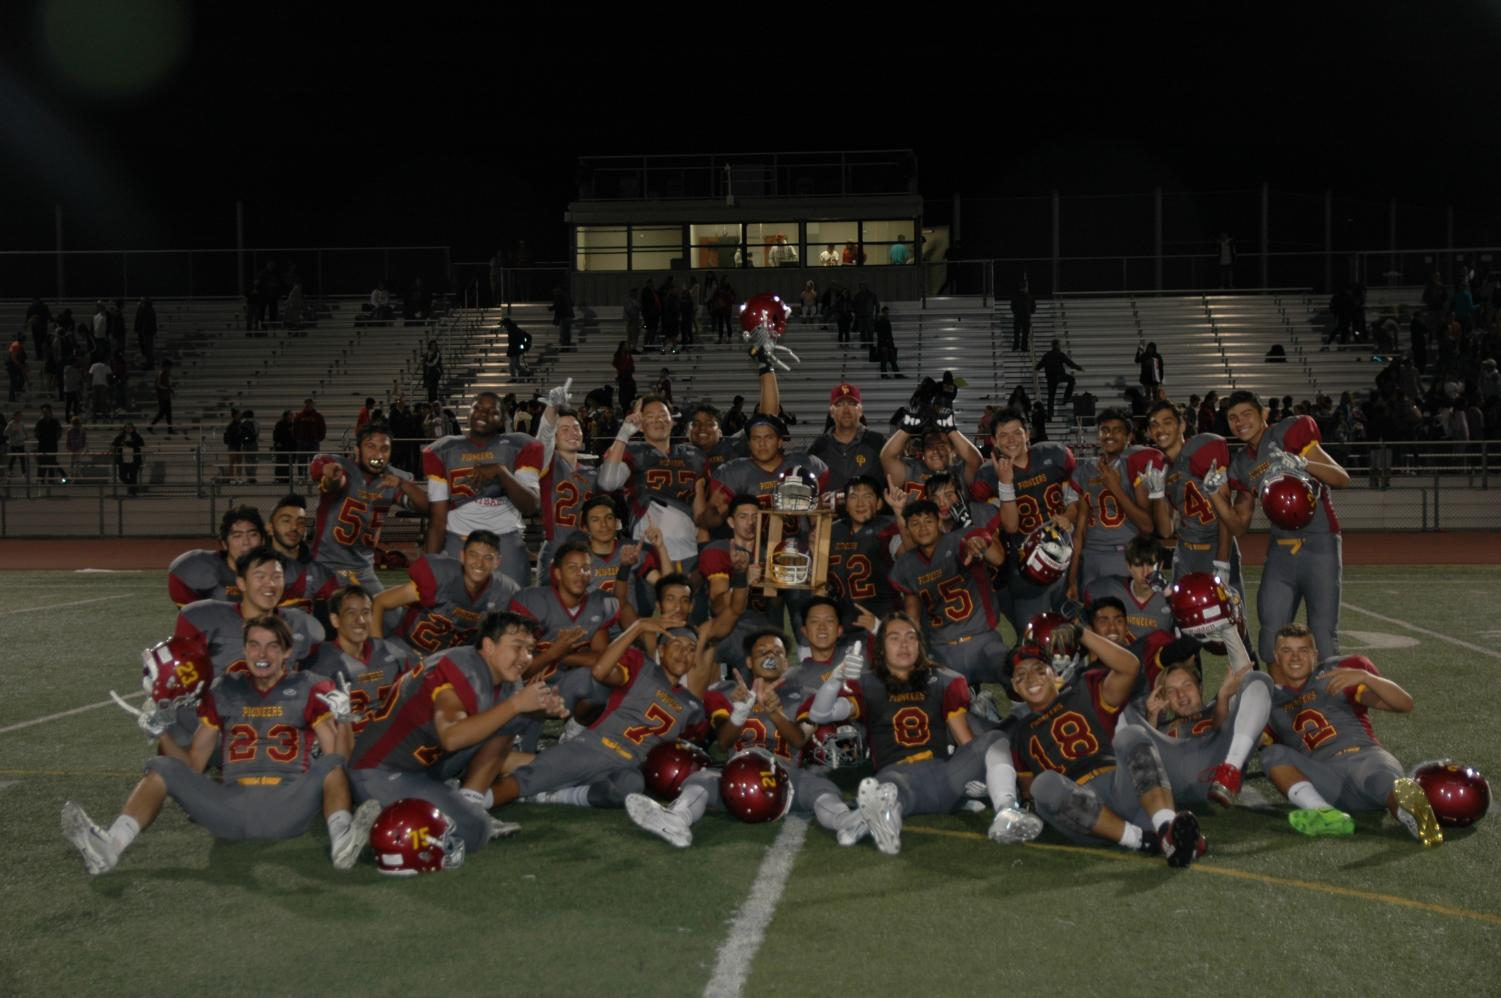 The varsity football team celebrates their third consecutive victory against Monta Vista in the annual Helmet Game.